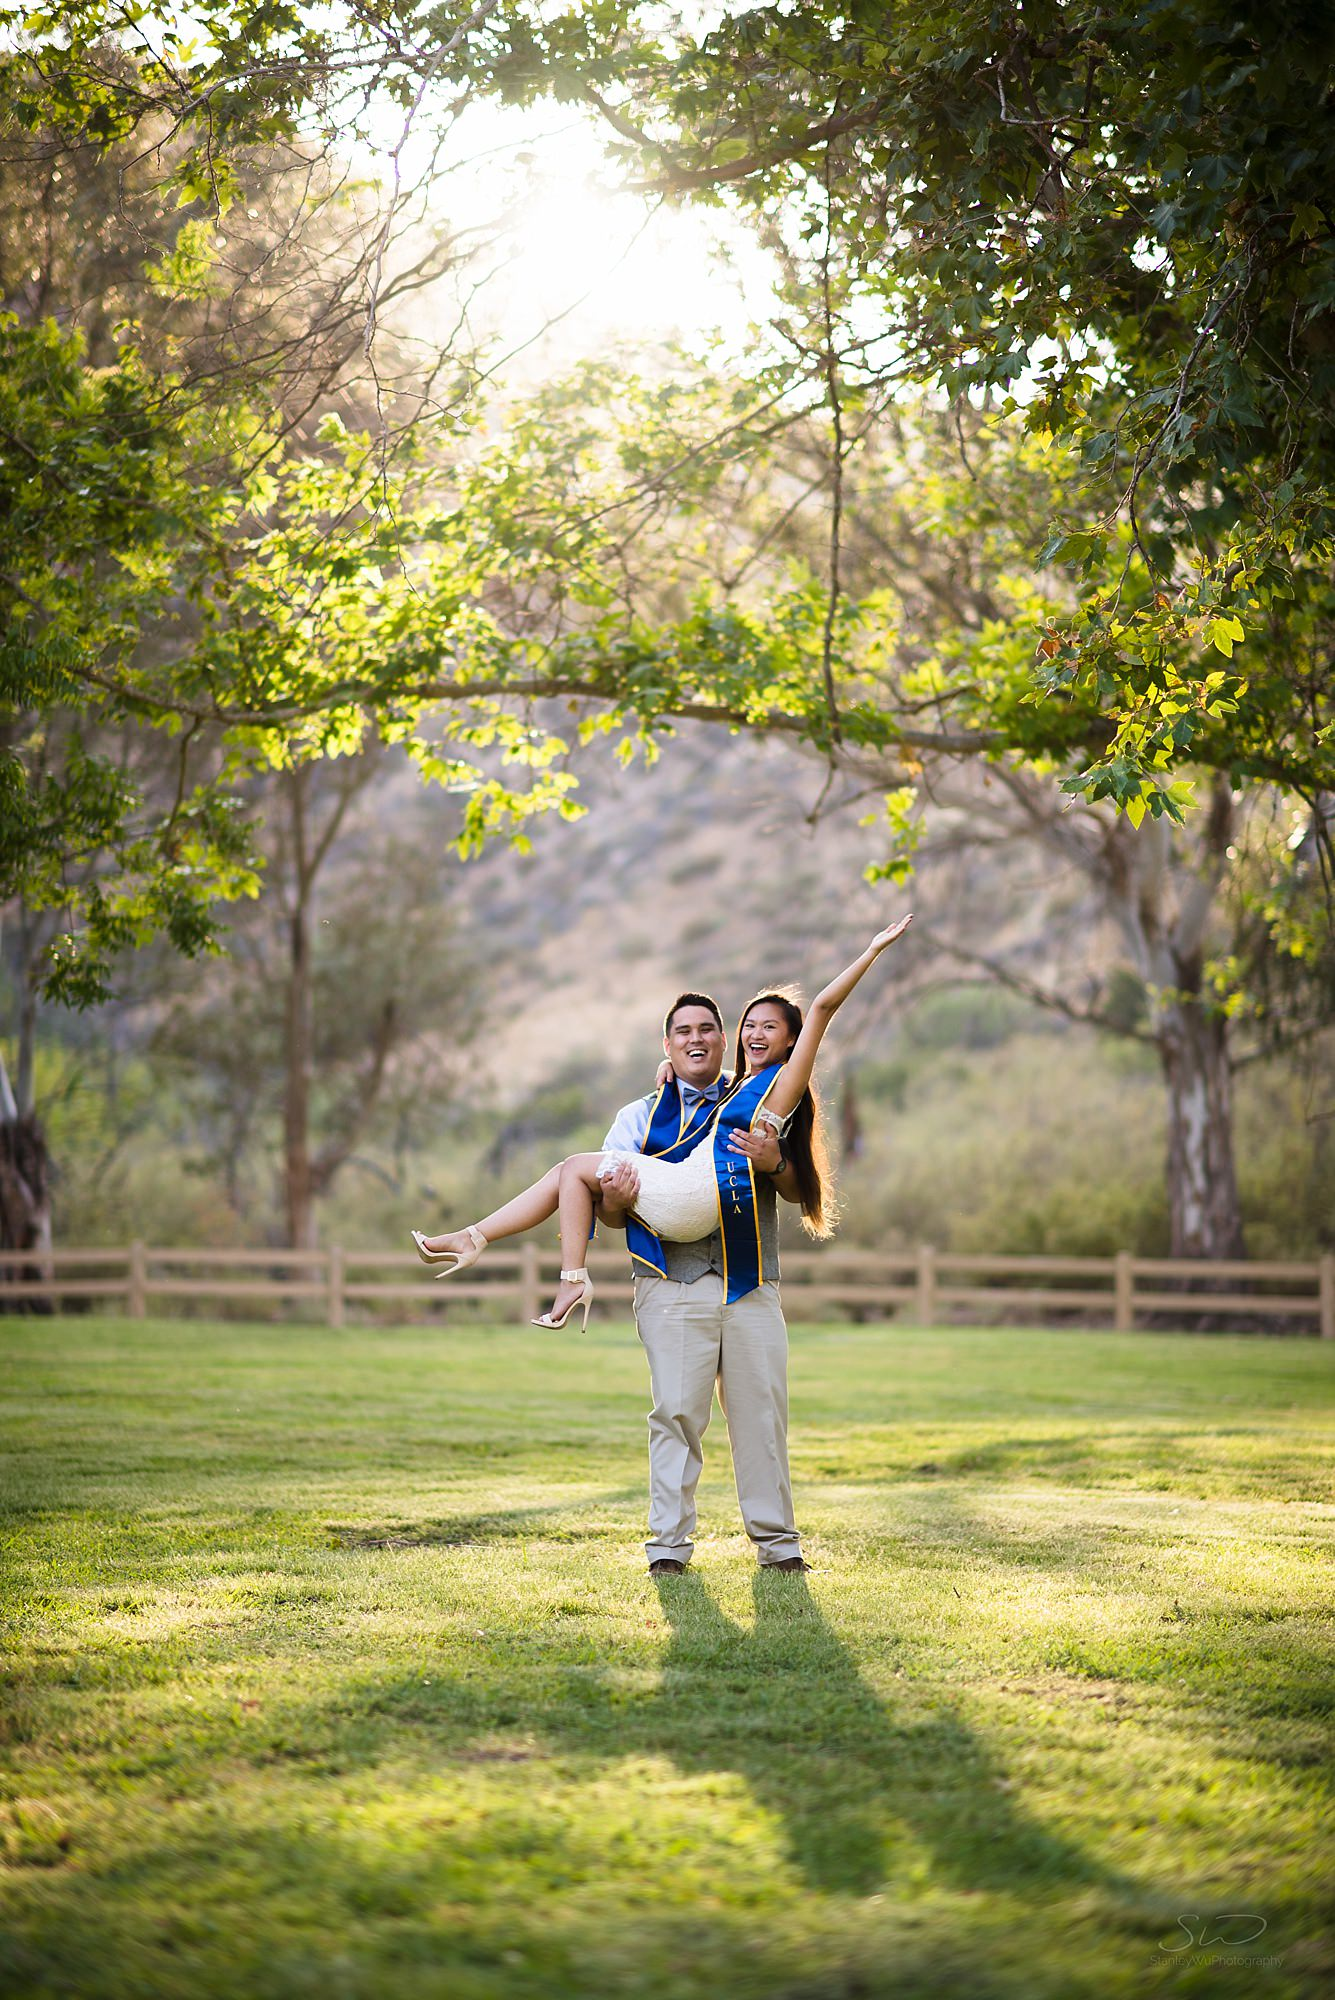 beautiful graduation senior portrait of a couple and the boyfriend carrying the girlfriend in a grassy area at omelveney park in san fernando valley in southern california